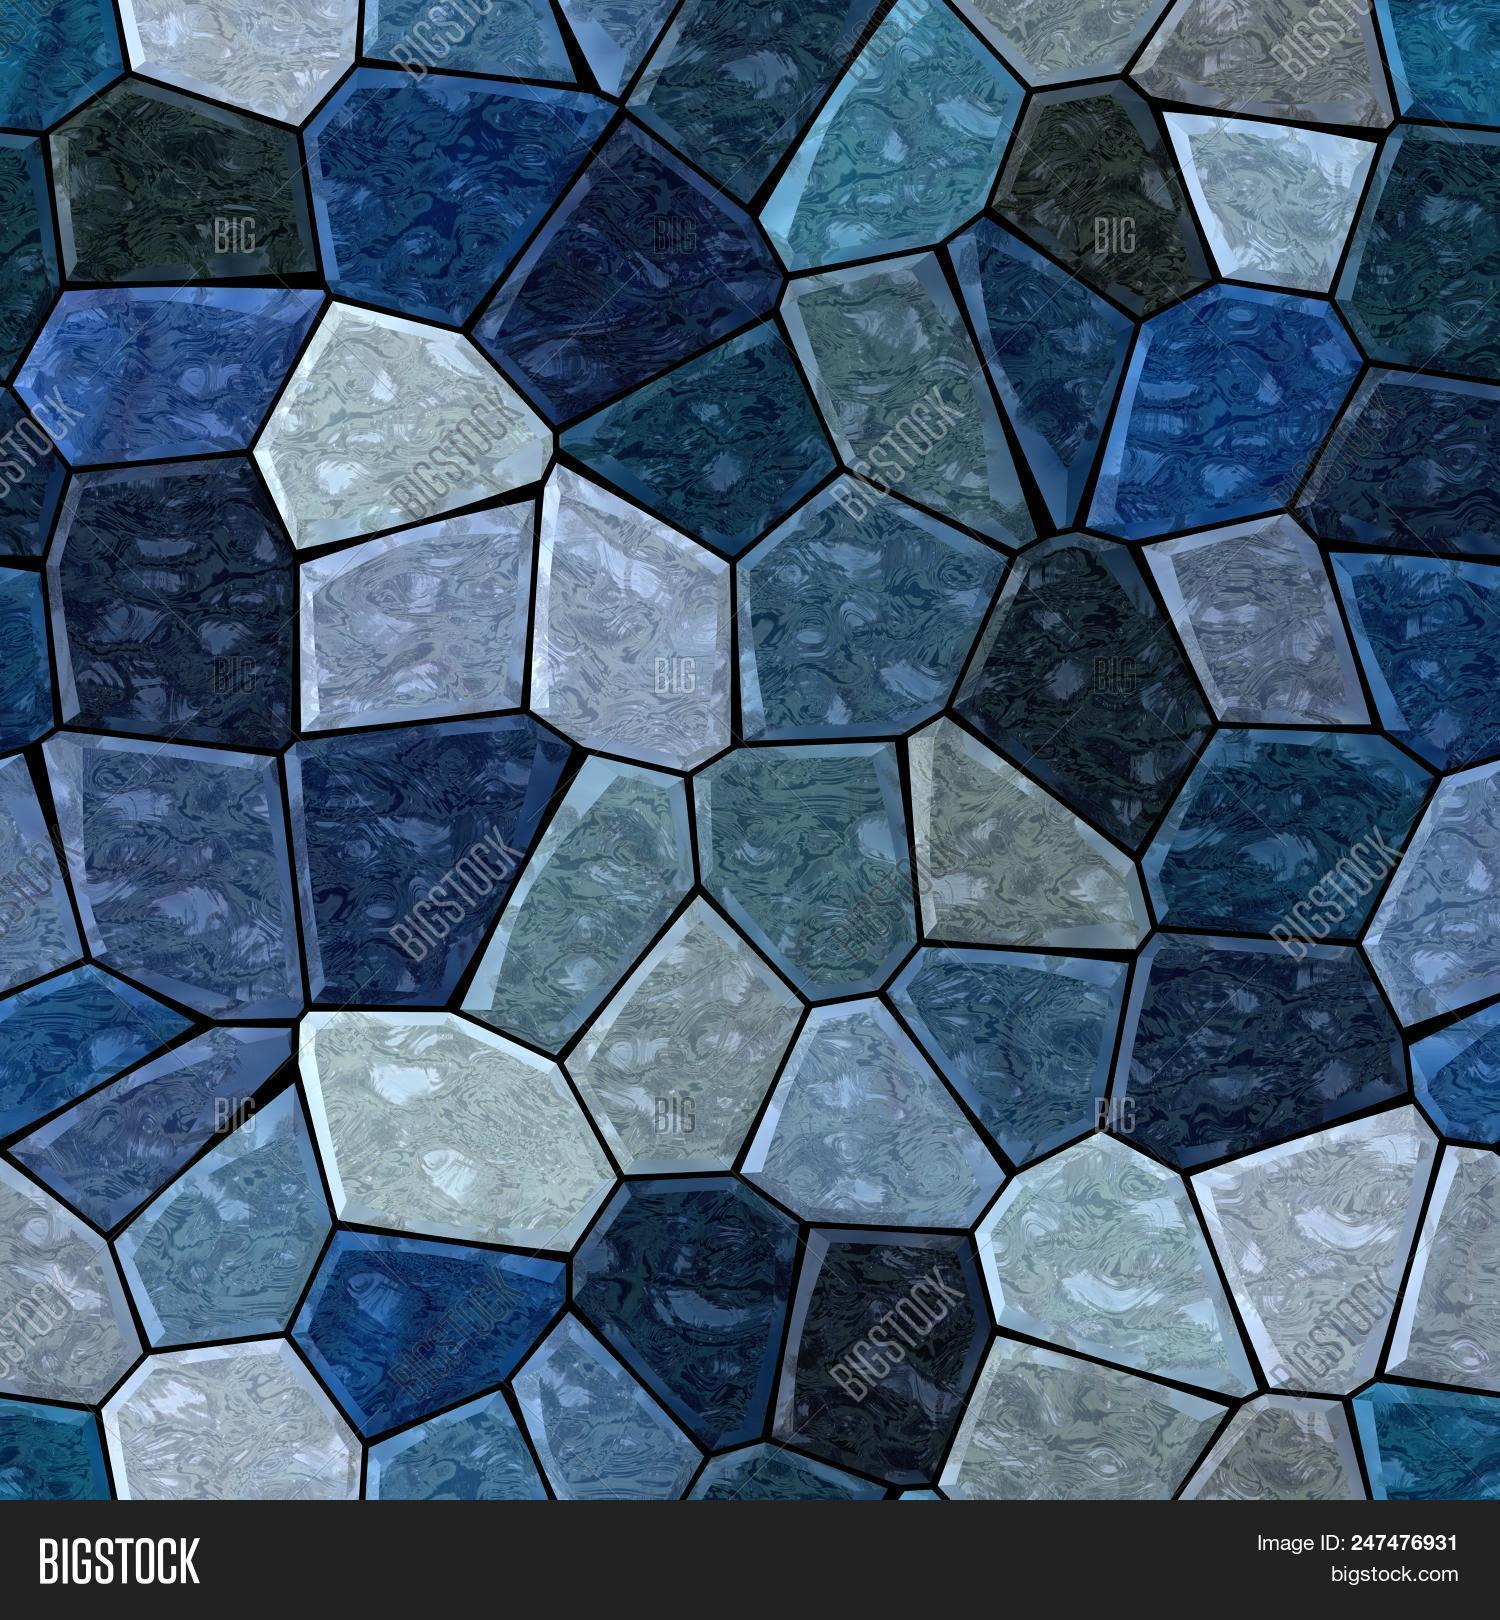 Surface Floor Marble Image & Photo (Free Trial) | Bigstock